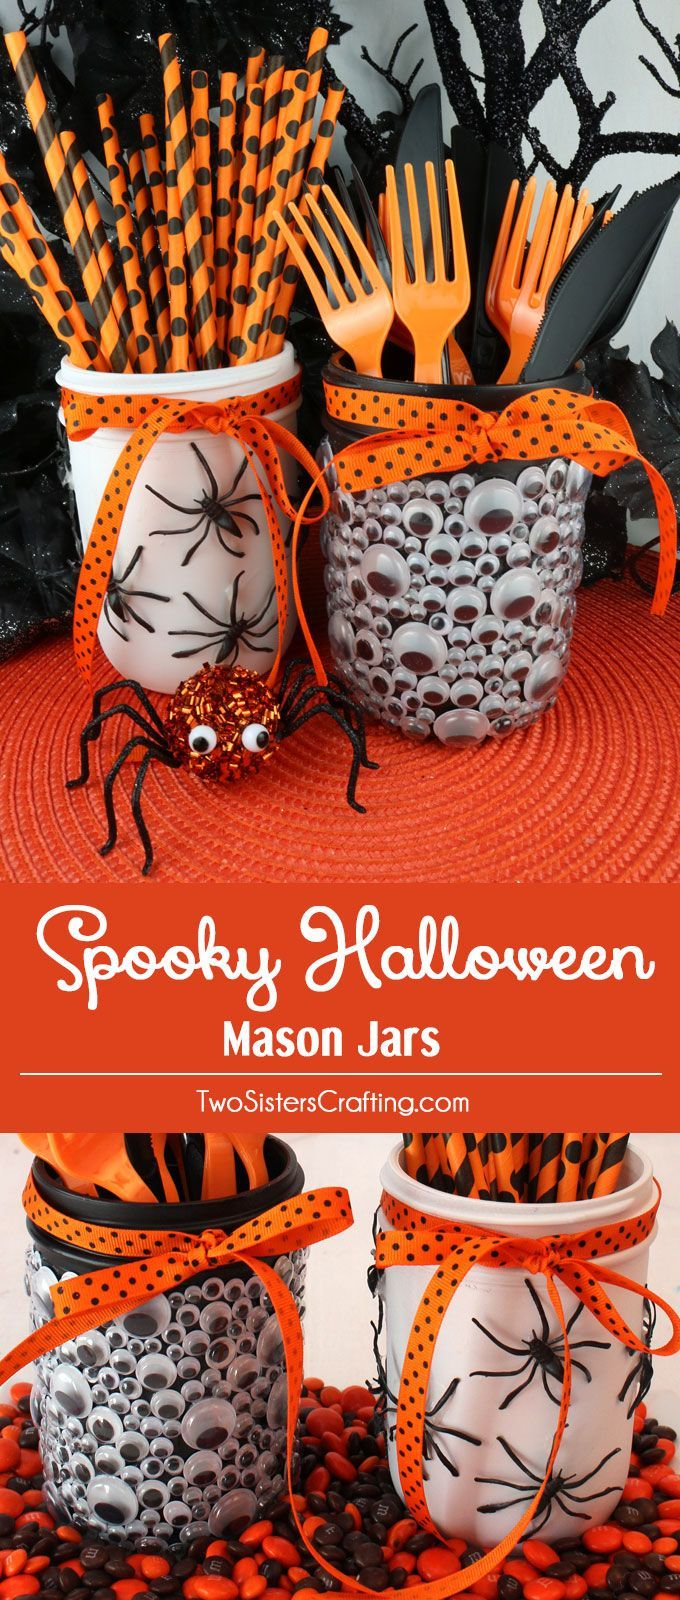 spooky halloween mason jars fun halloween decorationshalloween - Homemade Halloween Decorations Ideas